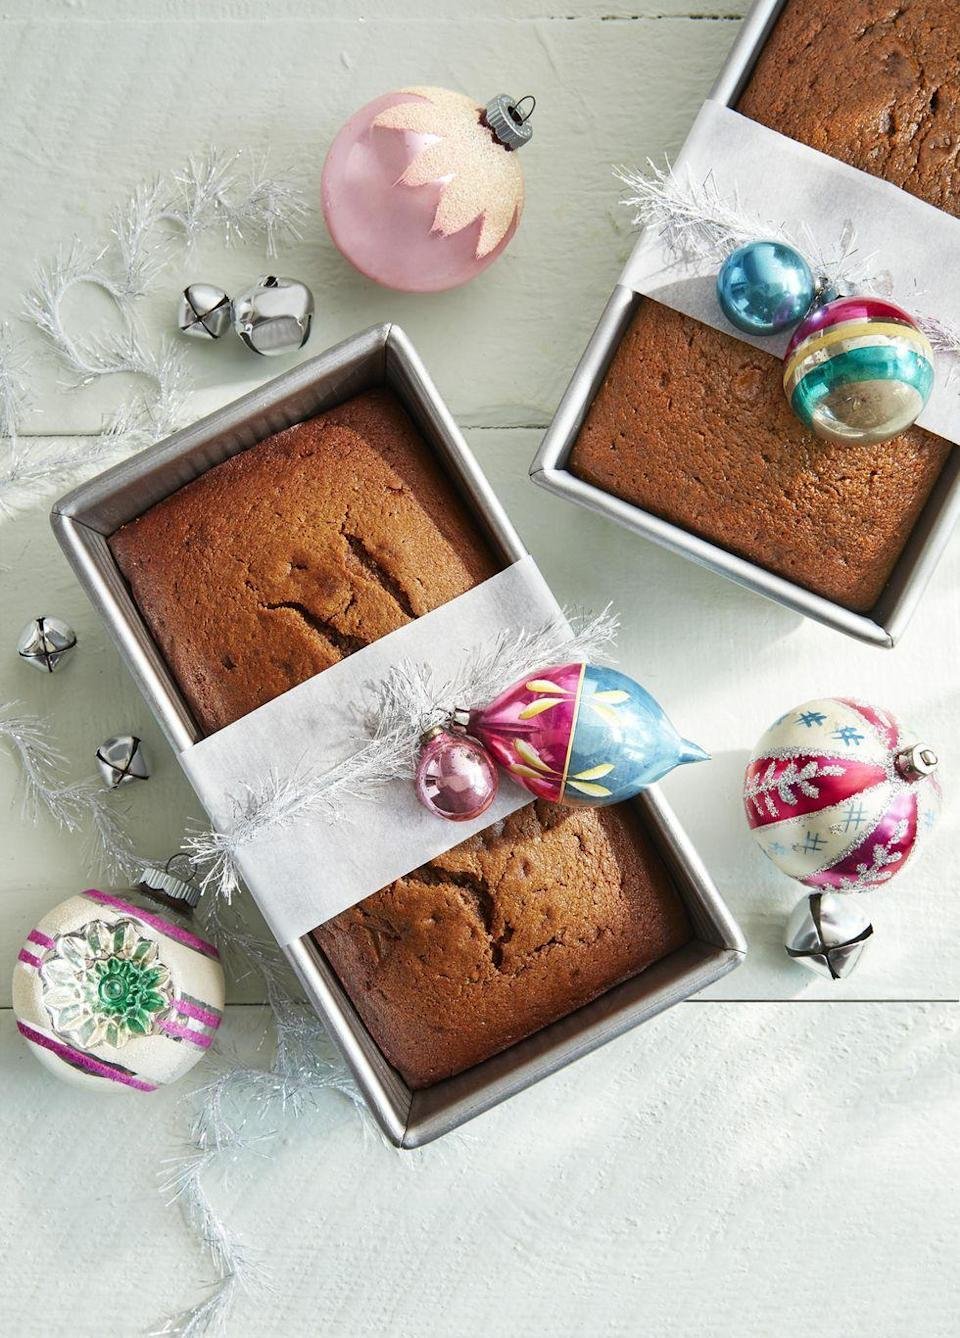 """<p>Chopped pears folded into the spicy-sweet batter add great texture and special seasonal flavor. Definitely gift-worthy!</p><p><em><a href=""""https://www.countryliving.com/food-drinks/a25439942/gingerbread-pear-loaf-recipe/"""" rel=""""nofollow noopener"""" target=""""_blank"""" data-ylk=""""slk:Get the recipe from Country Living »"""" class=""""link rapid-noclick-resp"""">Get the recipe from Country Living »</a></em> </p>"""